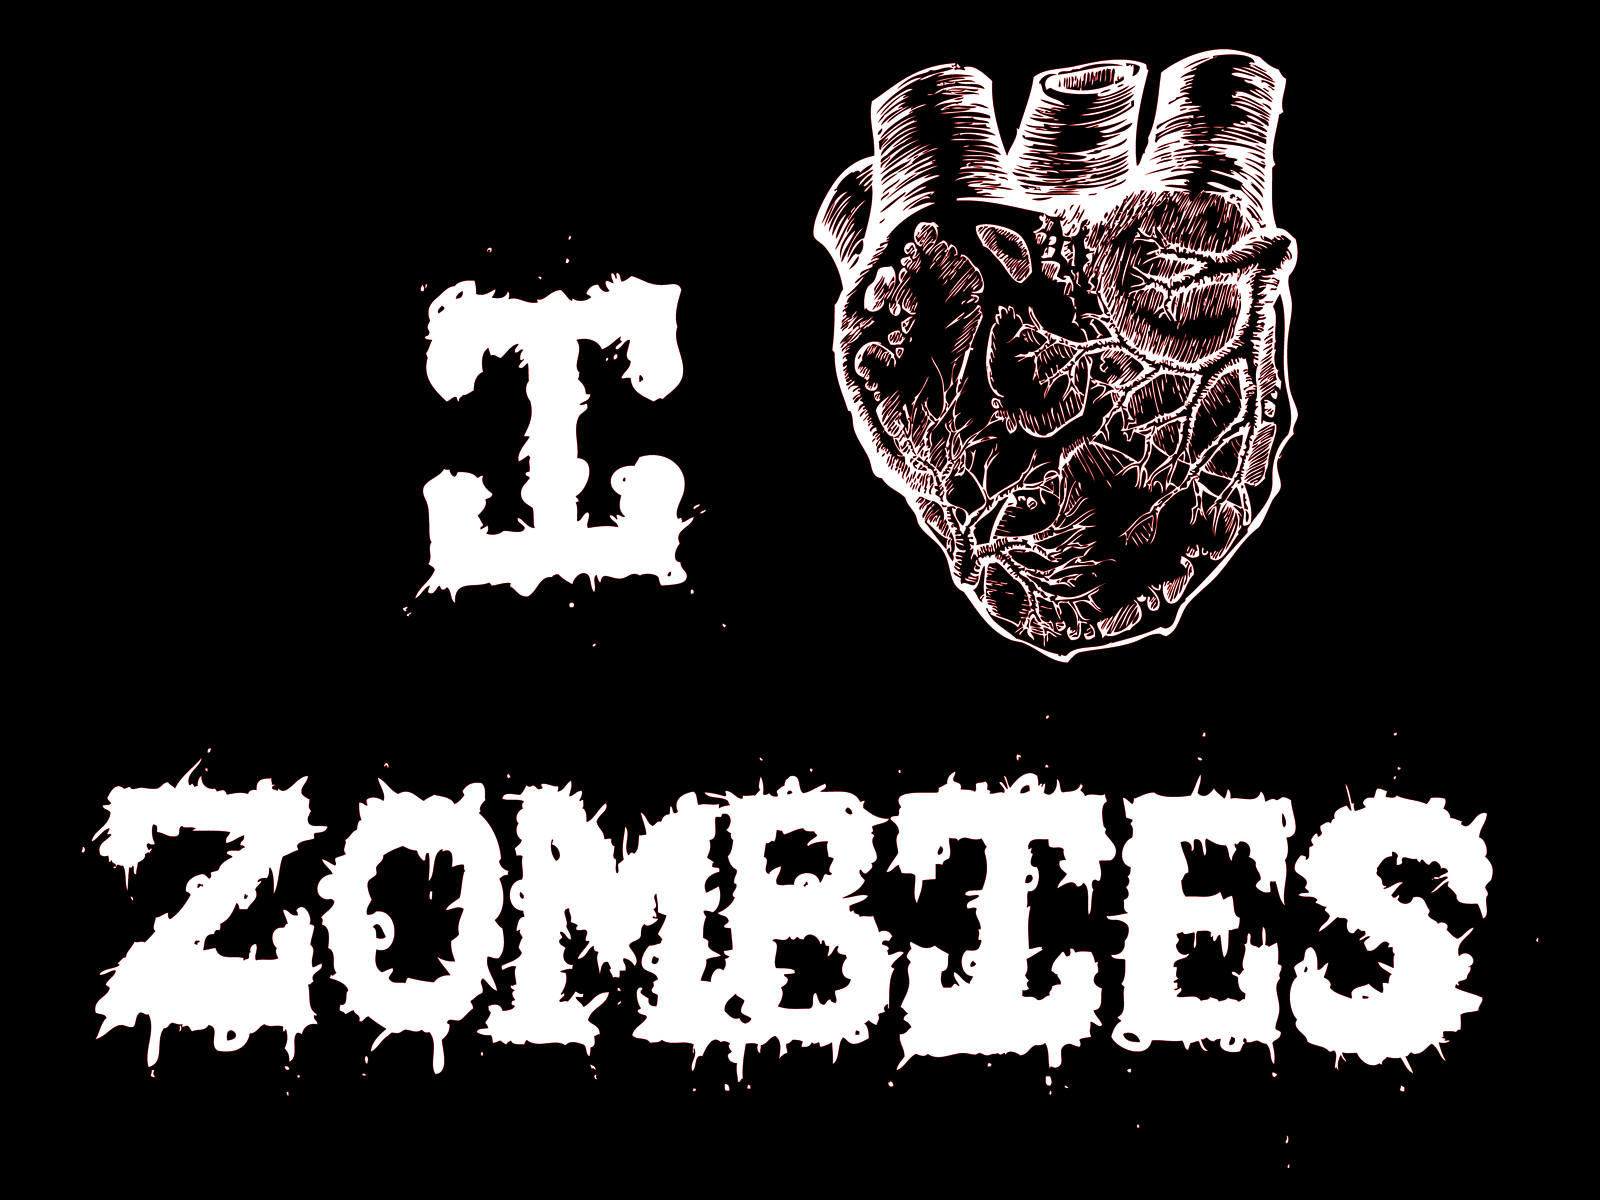 Top HDQ Free Zombie Images